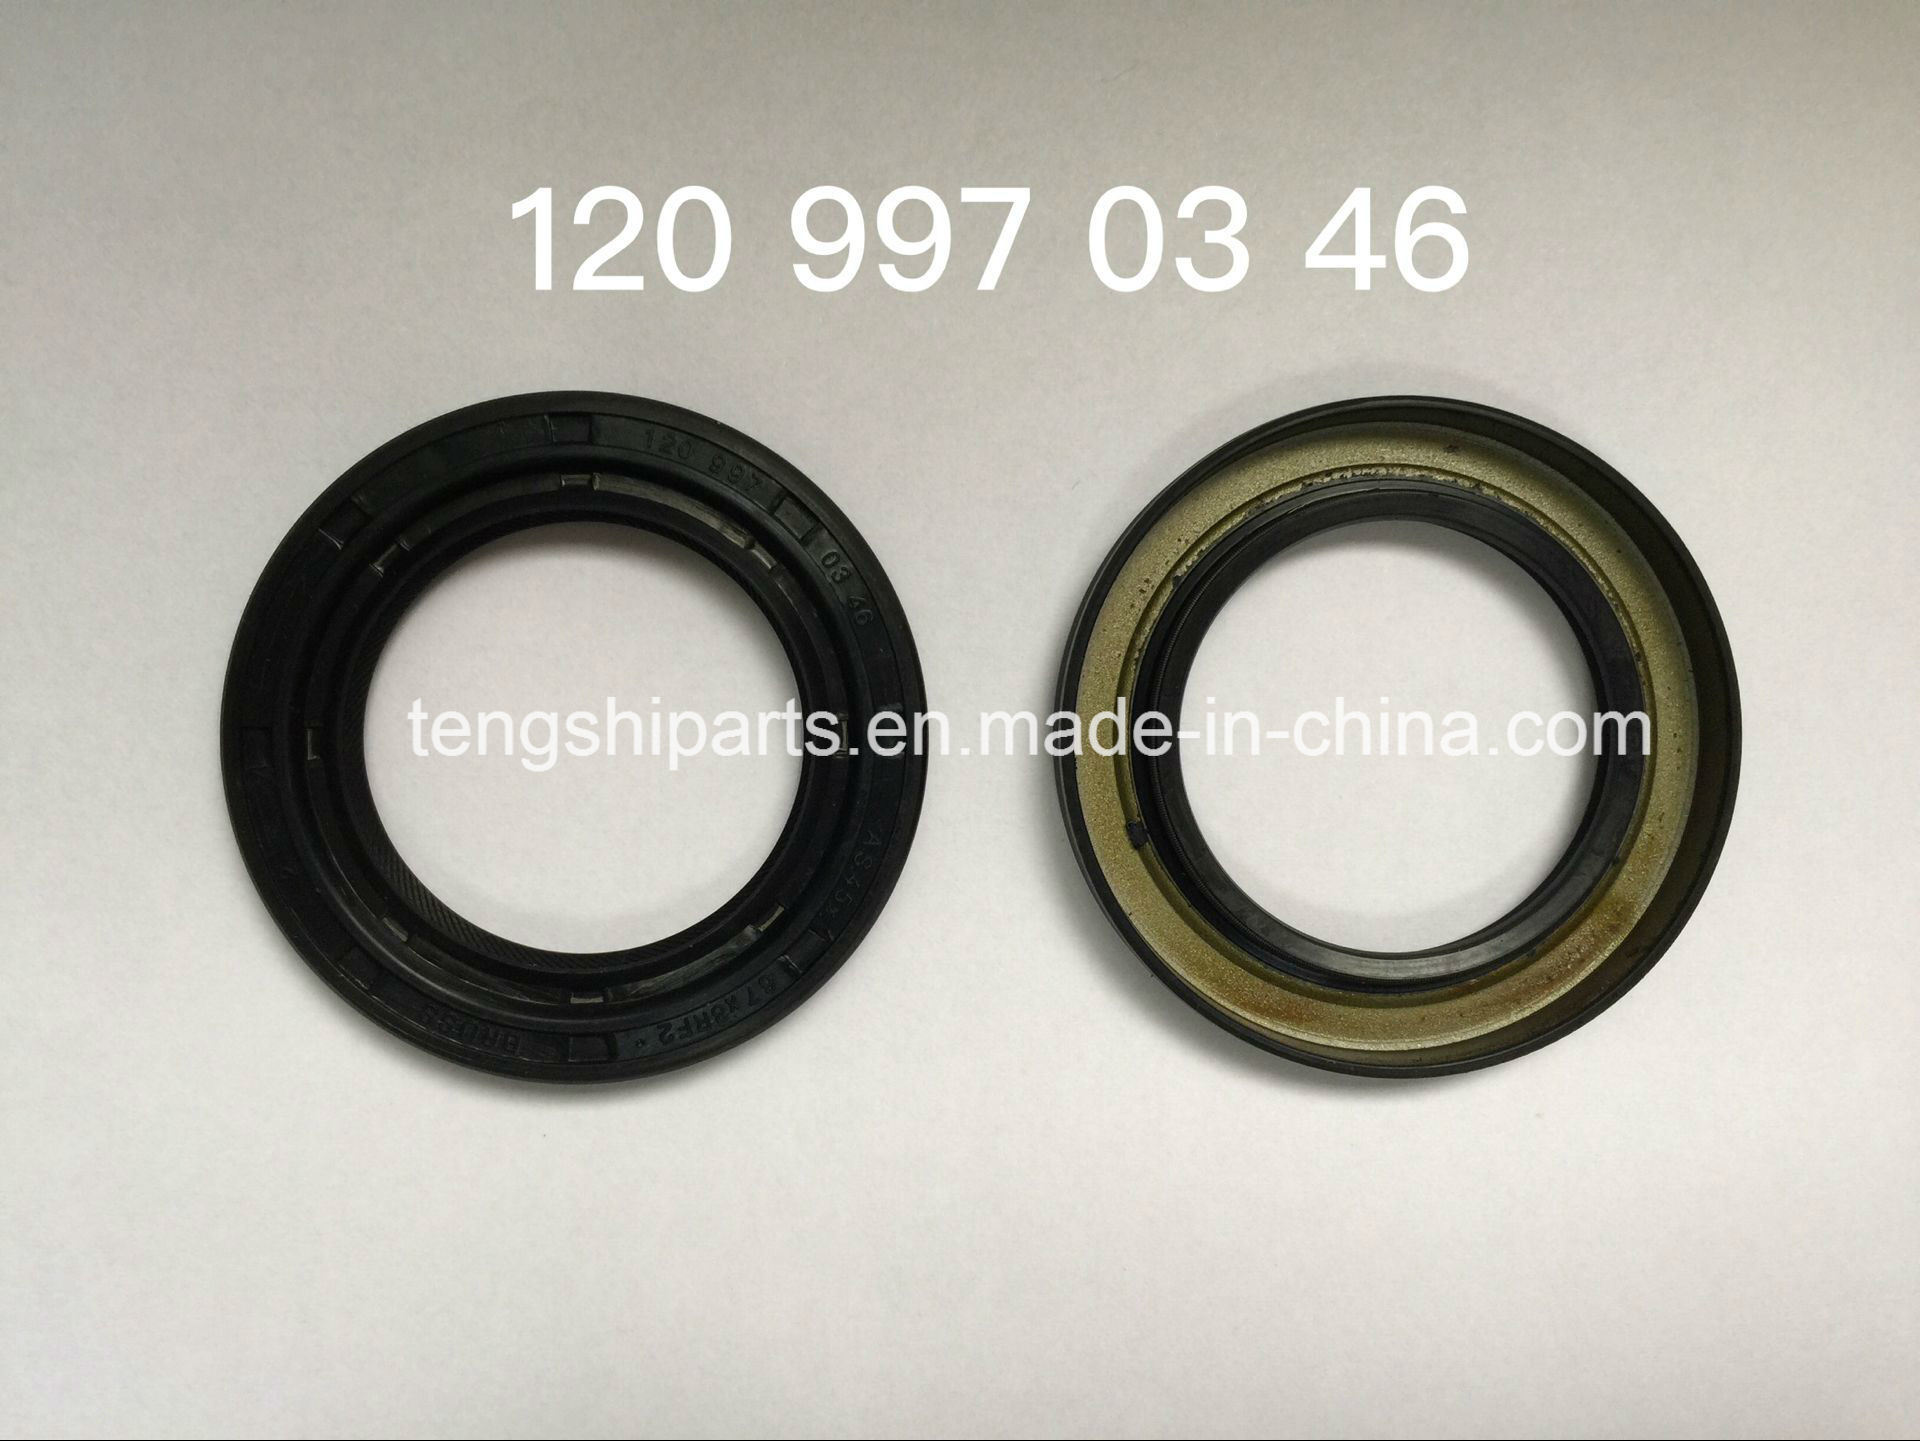 Oil Seal for Benz 120 997 03 46